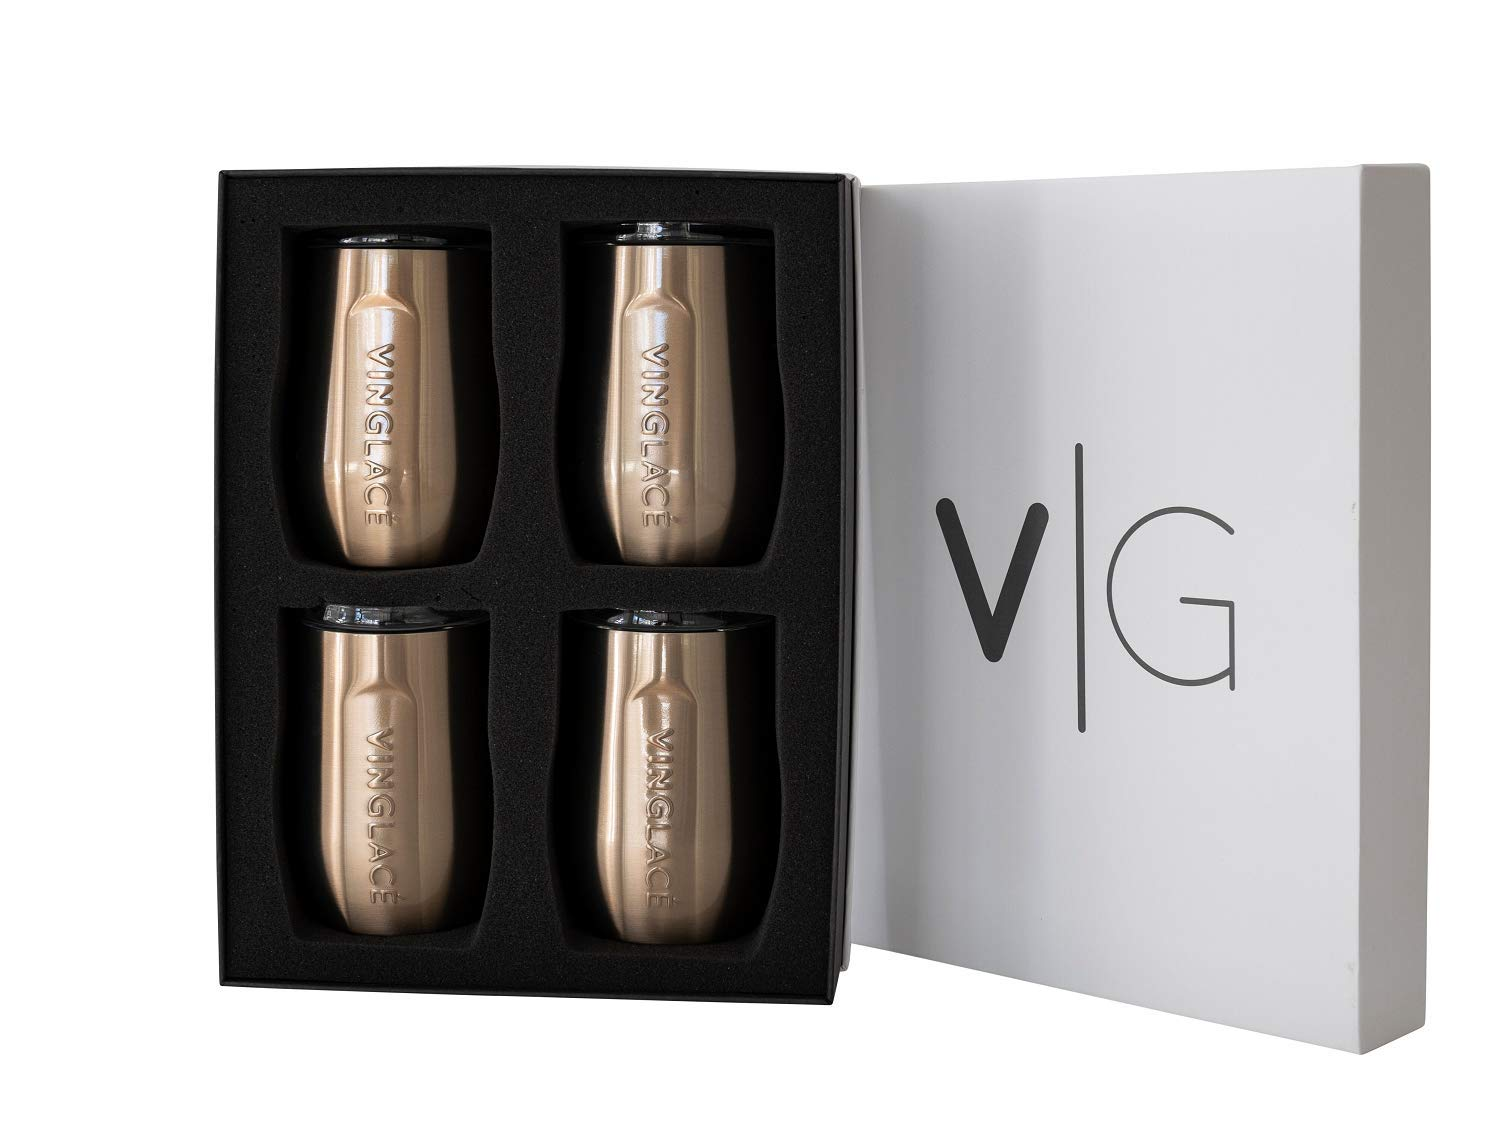 Vinglacé Stemless Wine Glass   Stainless Steel Outside, Glass Inside   Includes Spill Proof Lid   Double Walled, Vacuum Insulated   For Hot & Cold Beverage   Holds up to 10 oz   Set of 4   Copper